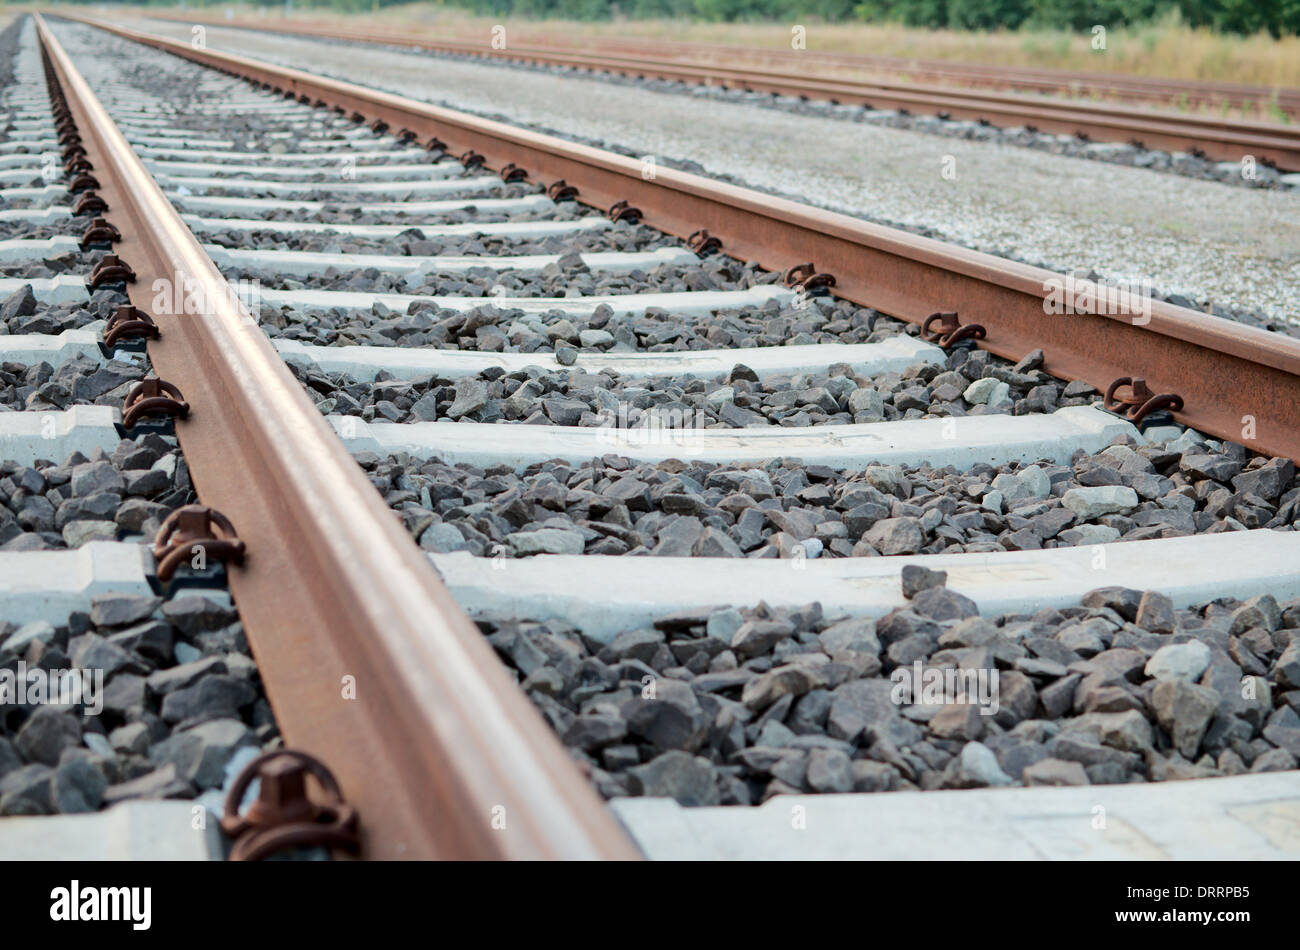 Railway Tracks with no Trains on Them Close-up - Stock Image